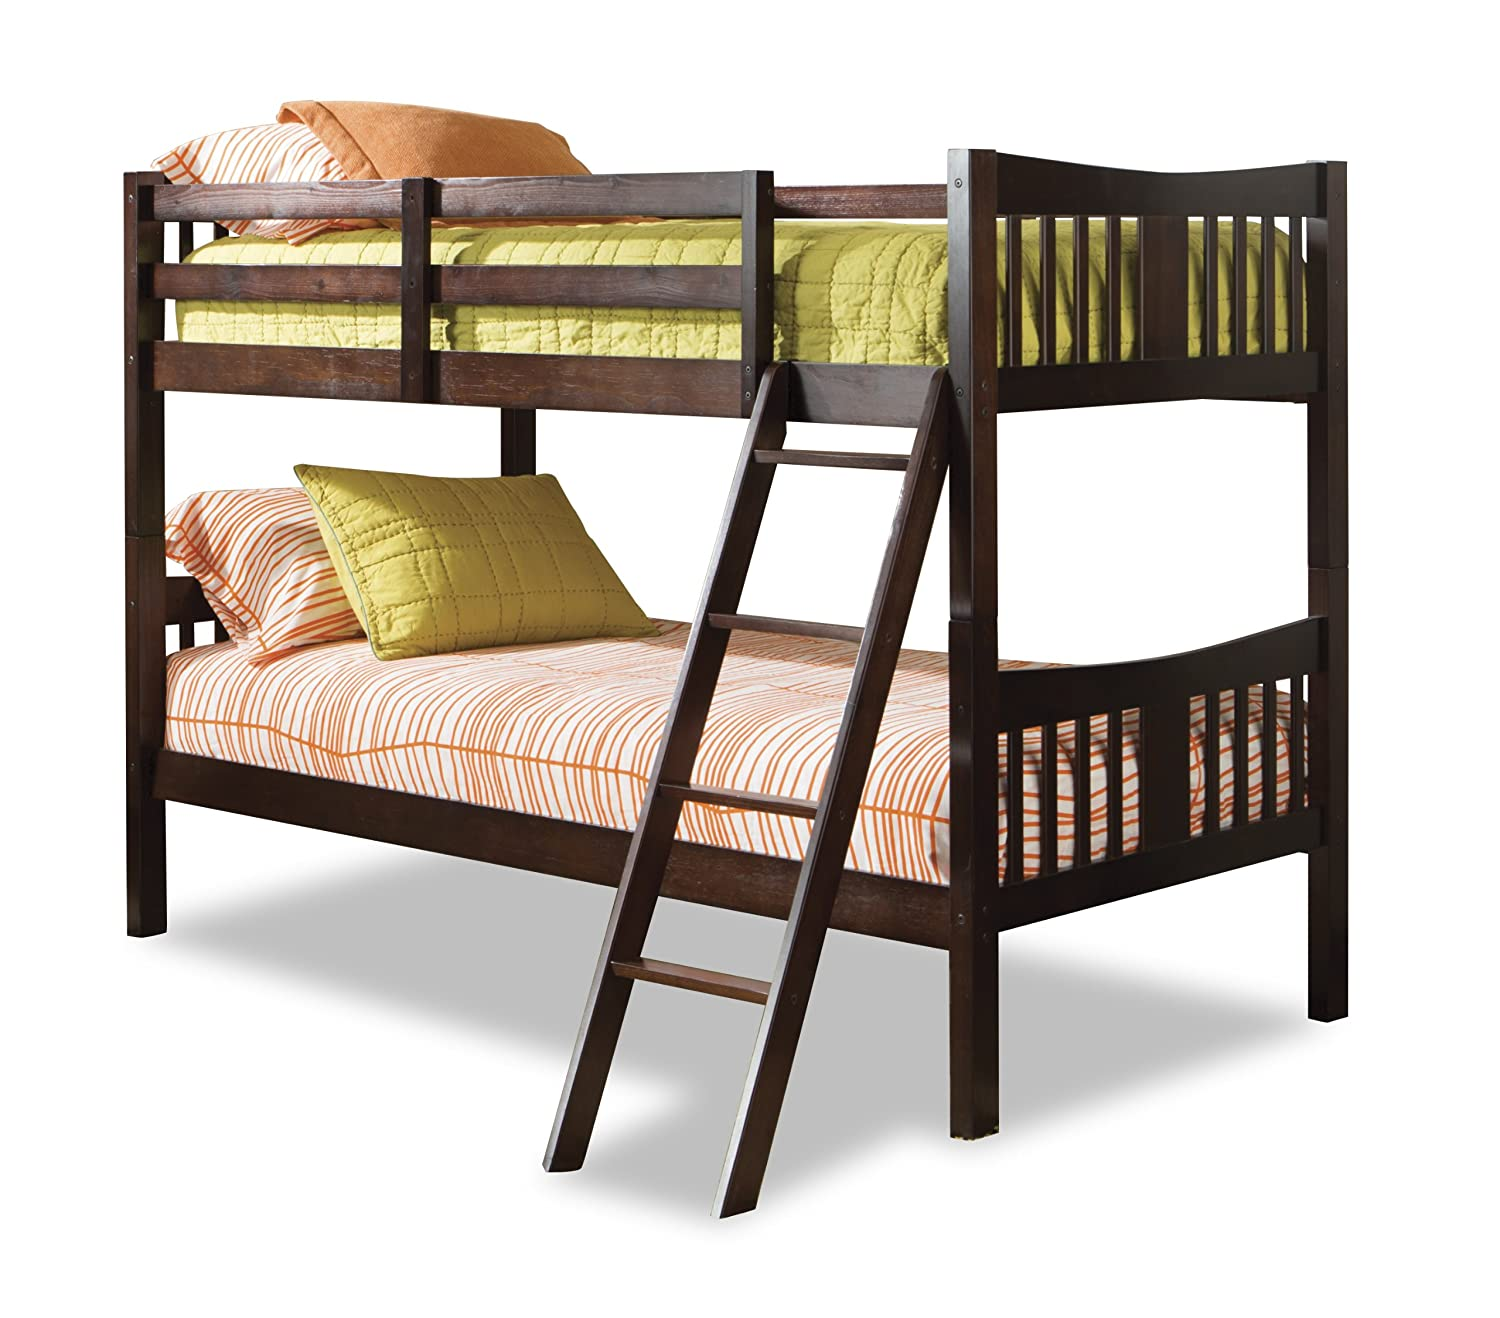 Twin Bunk Beds Espresso Wood Loft Kids Bedroom Furniture